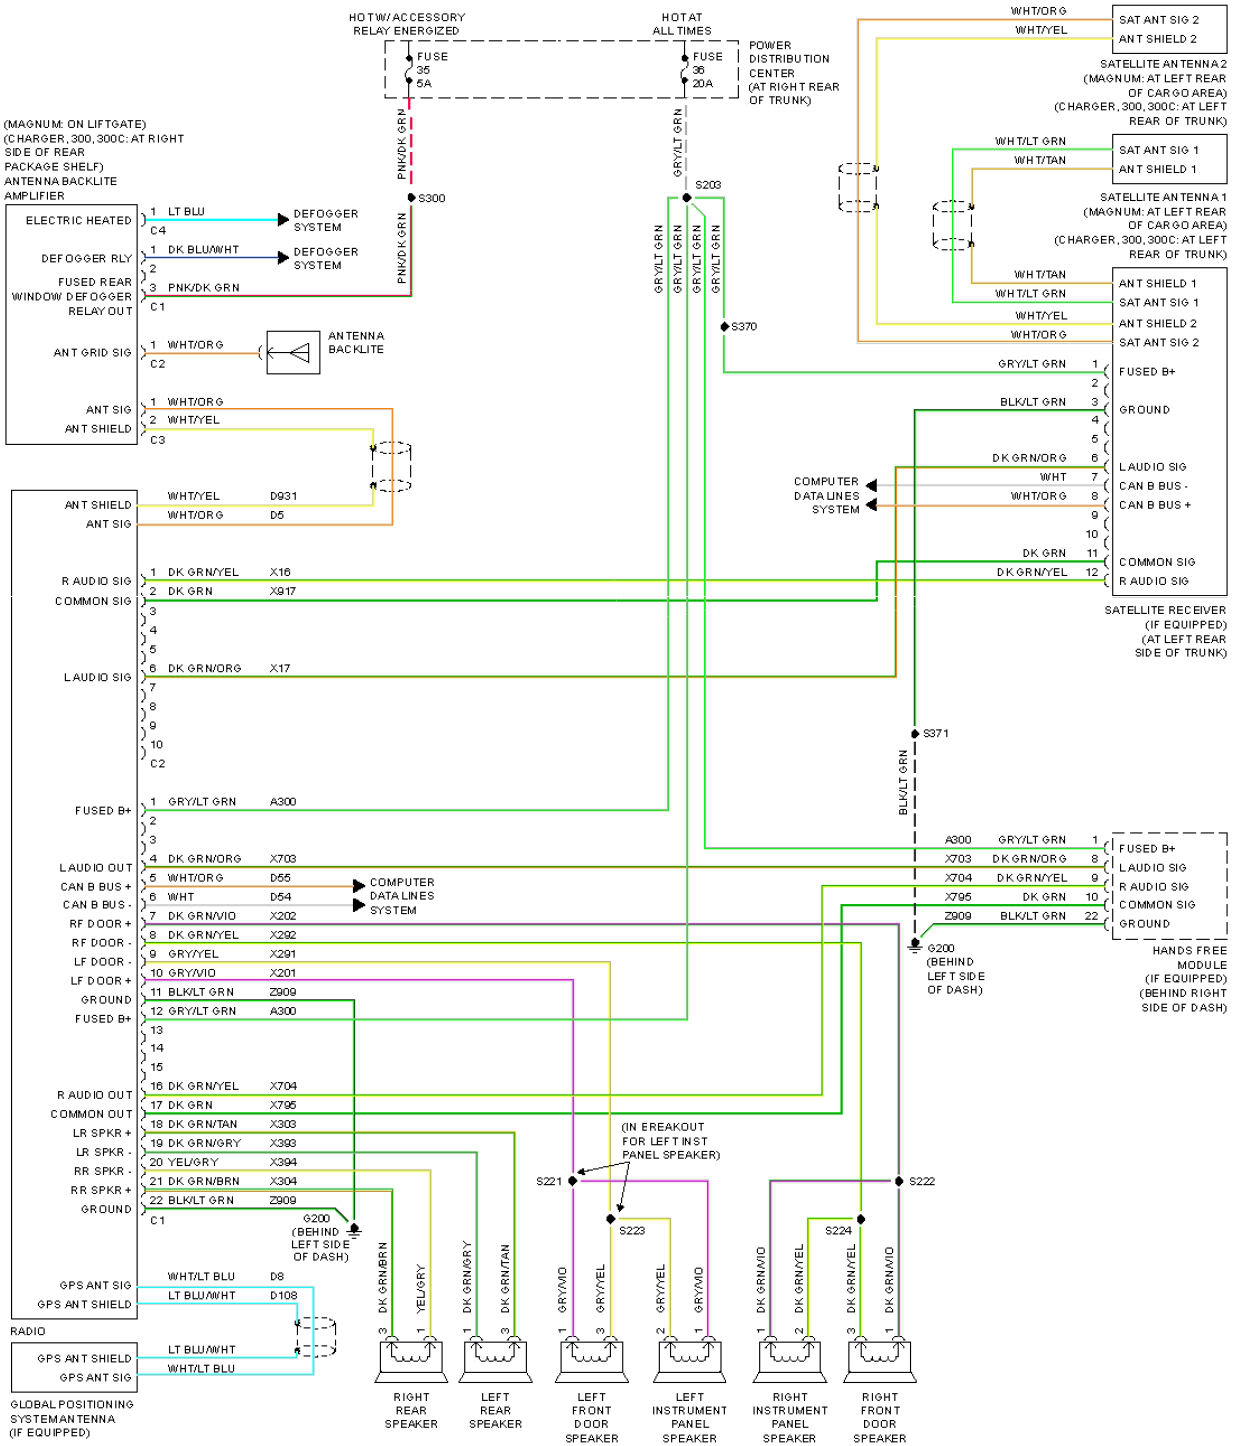 wiring diagram for 2006 dodge ram 2500 the wiring diagram 2000 dodge ram 2500 radio wiring diagram wiring diagram and hernes wiring diagram